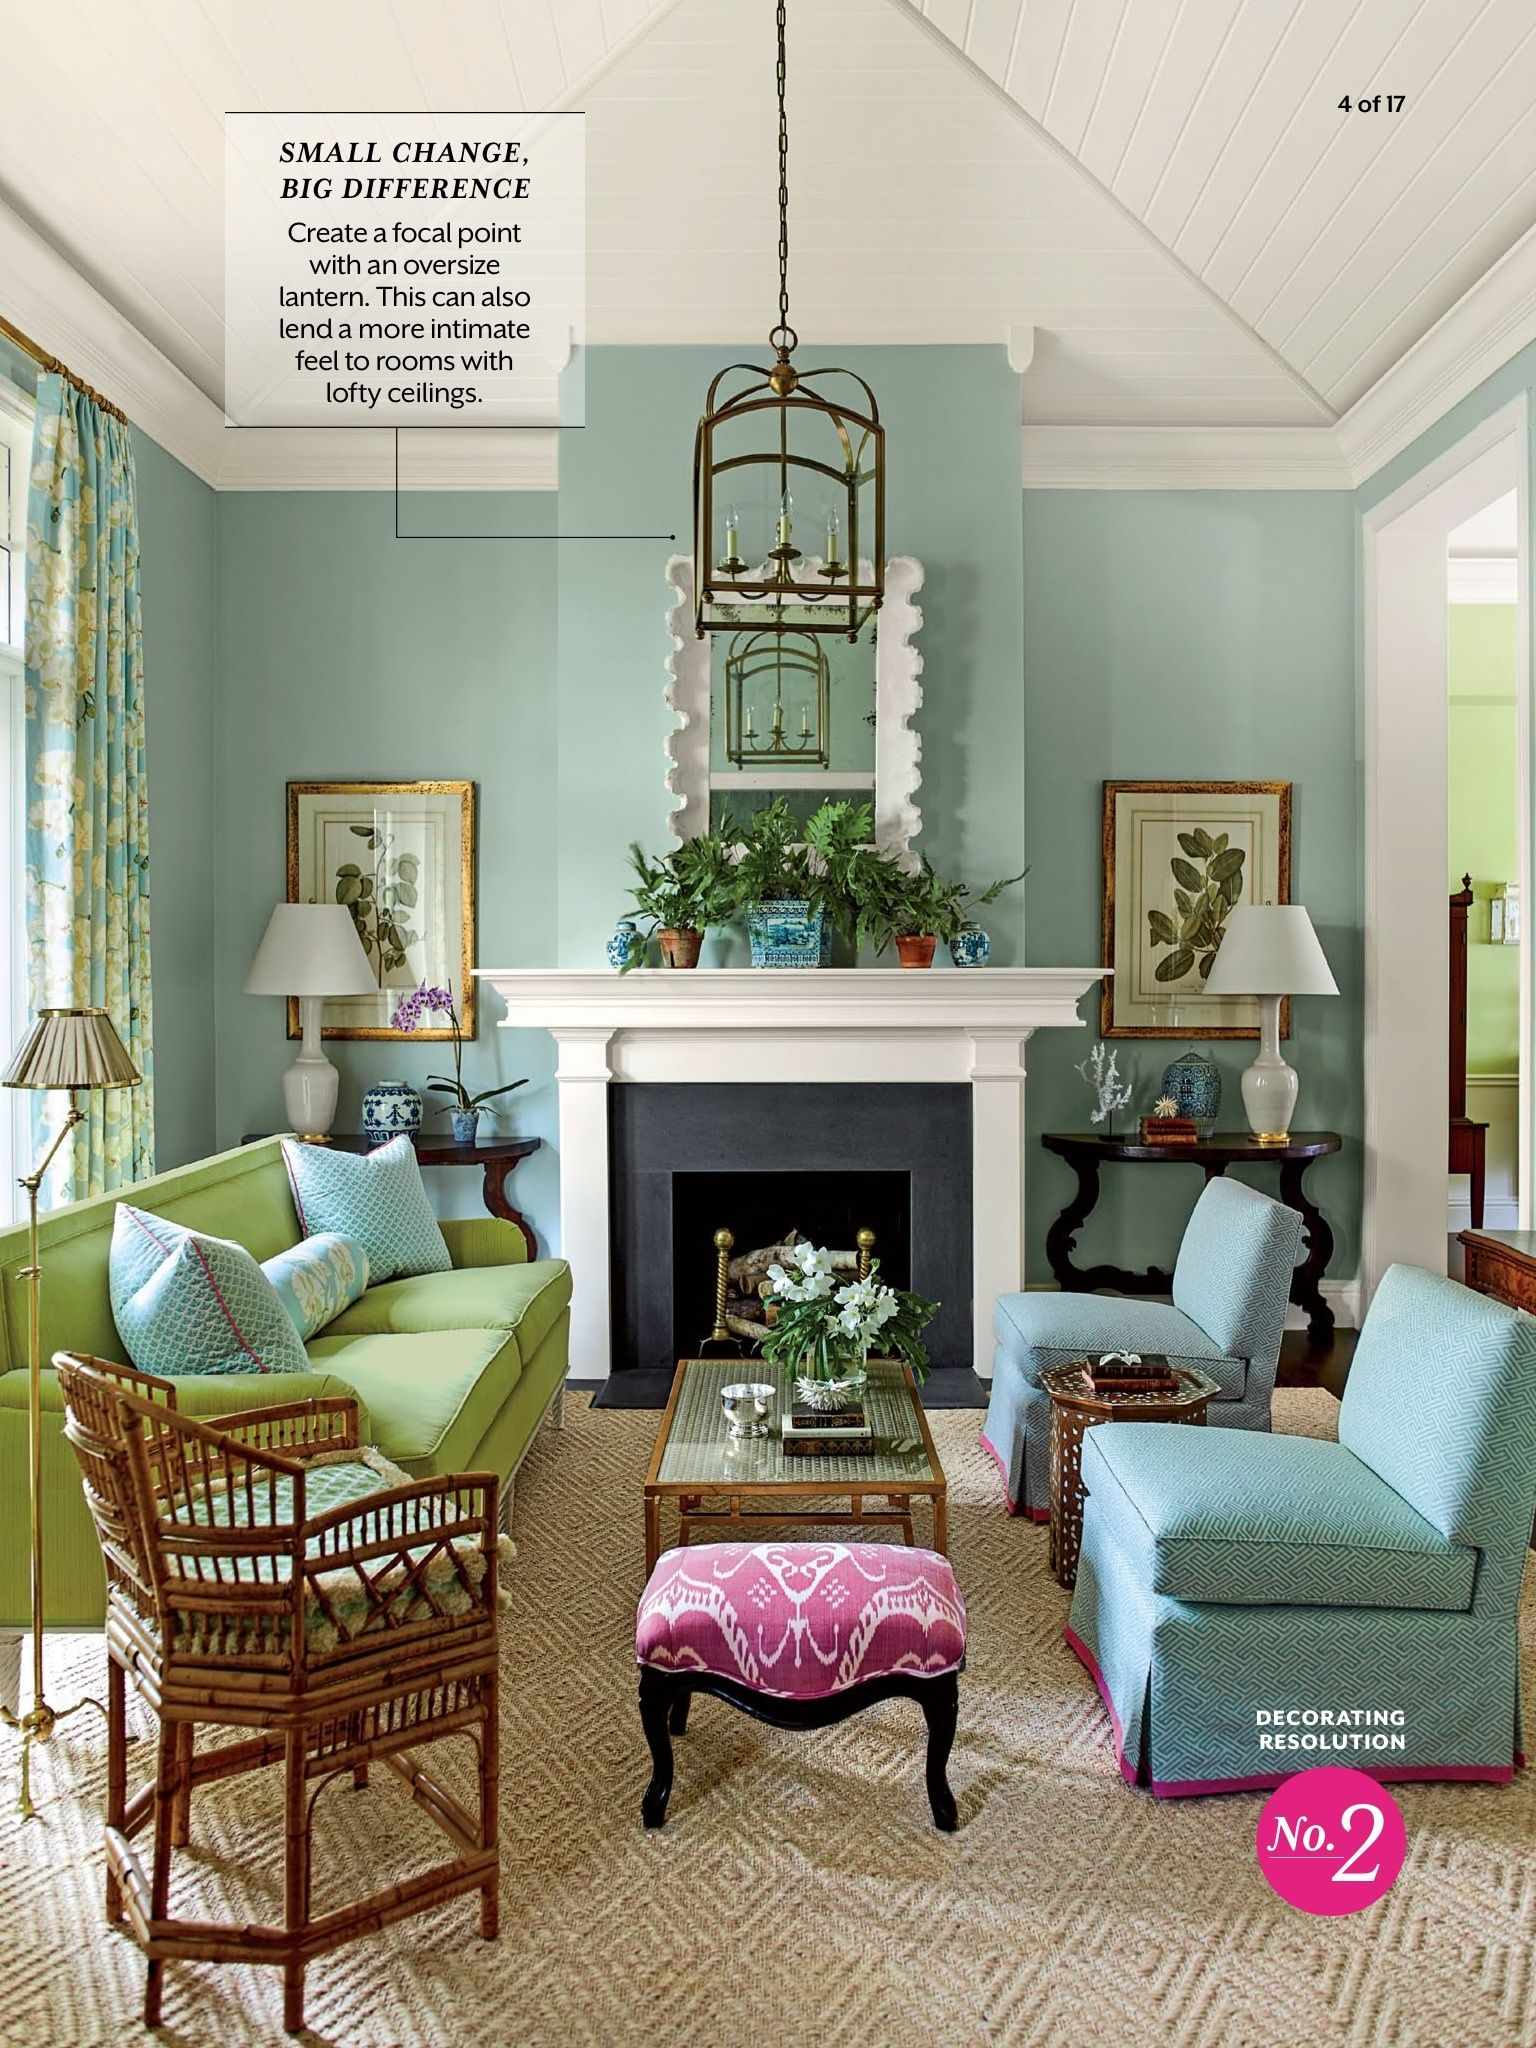 Pin By Noma Ziadeh On Home Decor Living Room Green Living Room Colors Living Room Decor Southern living room decor